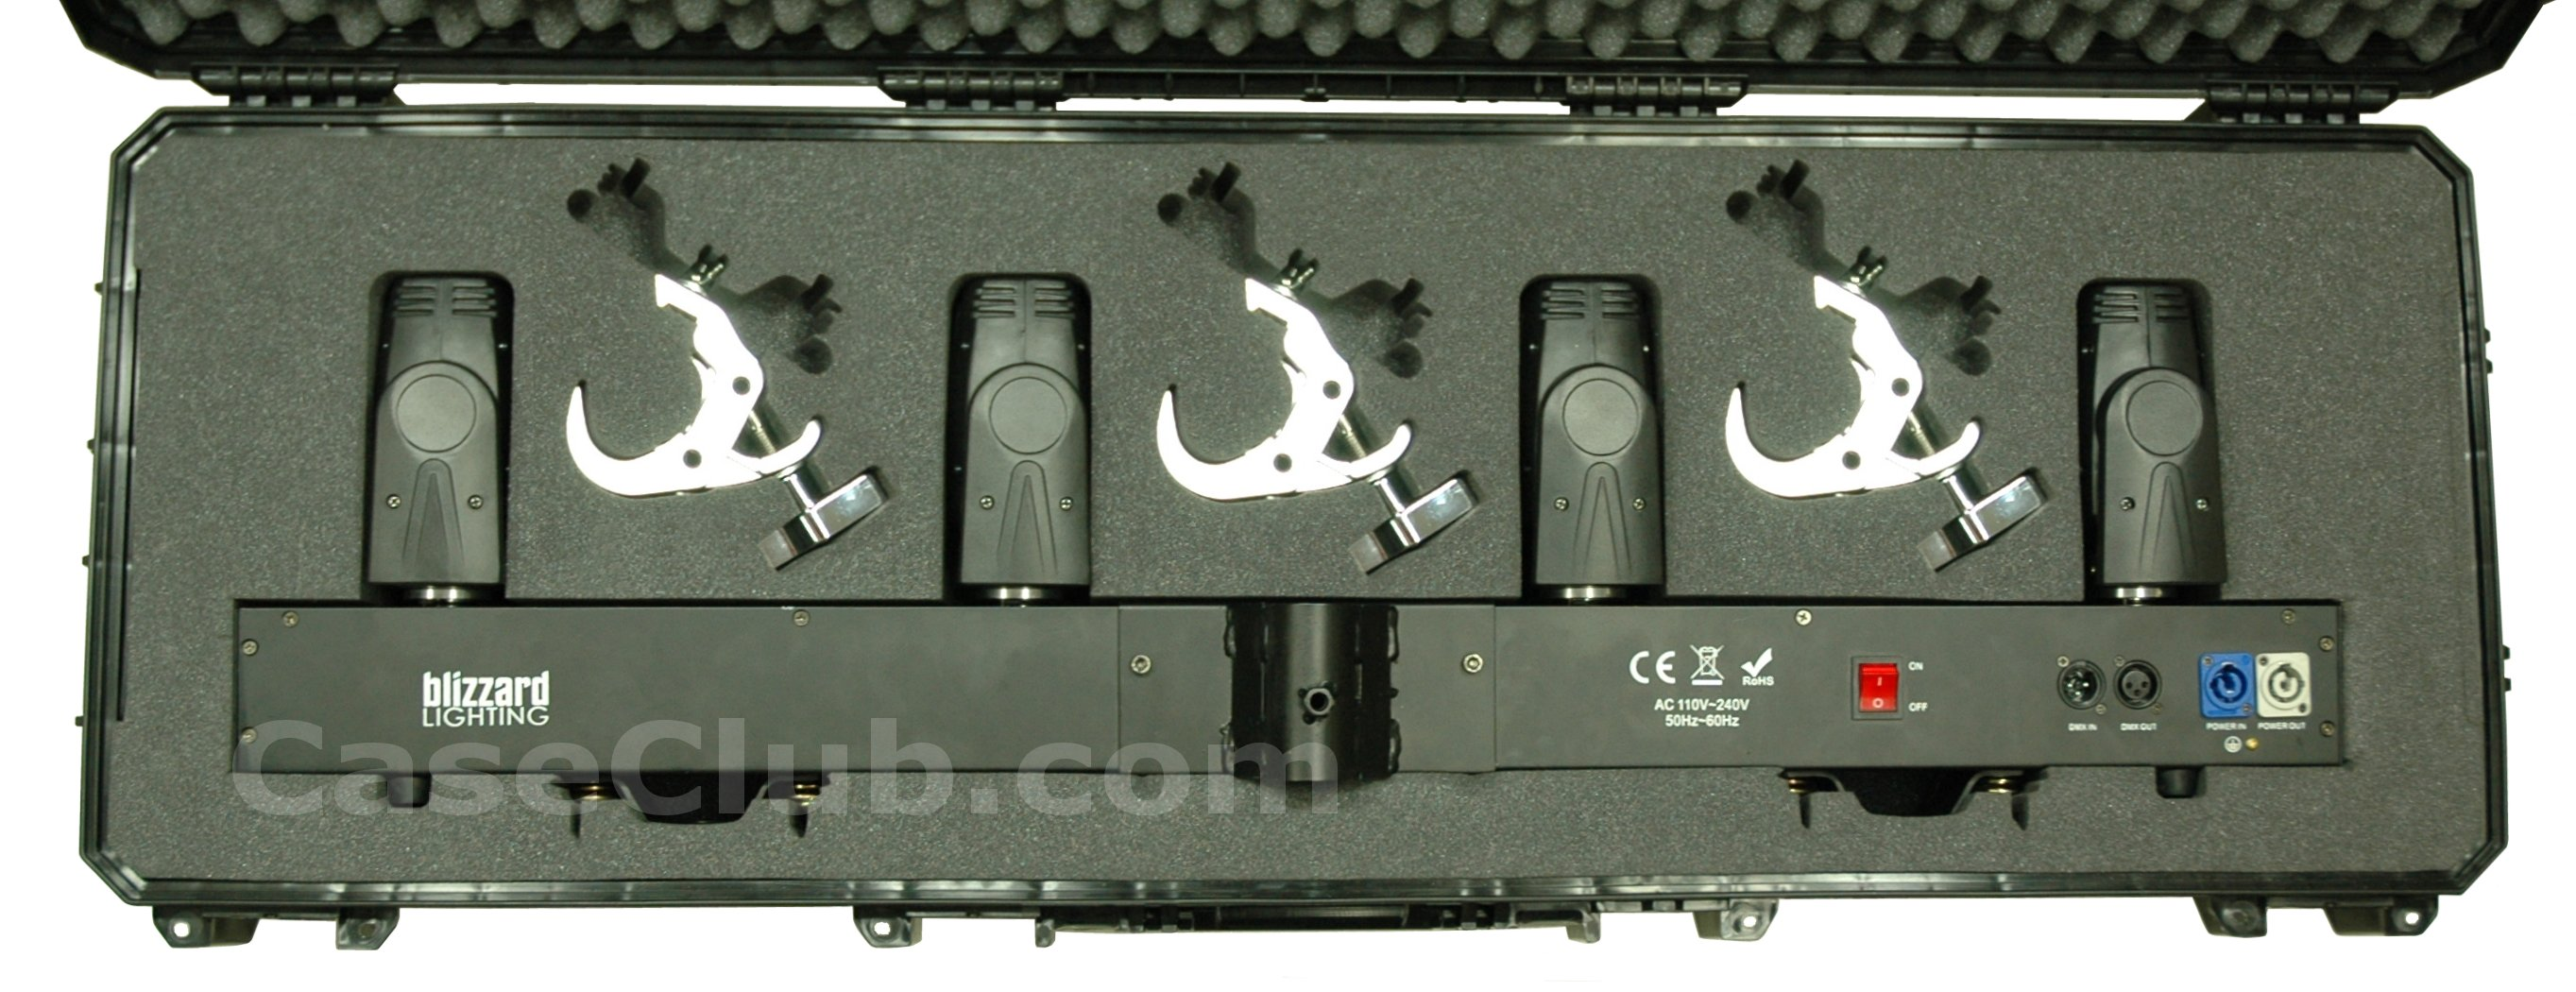 Seahorse 1530 Case Custom Foam Example: Blizzard Lighting Blade Runner RGBW Light Fixture Case